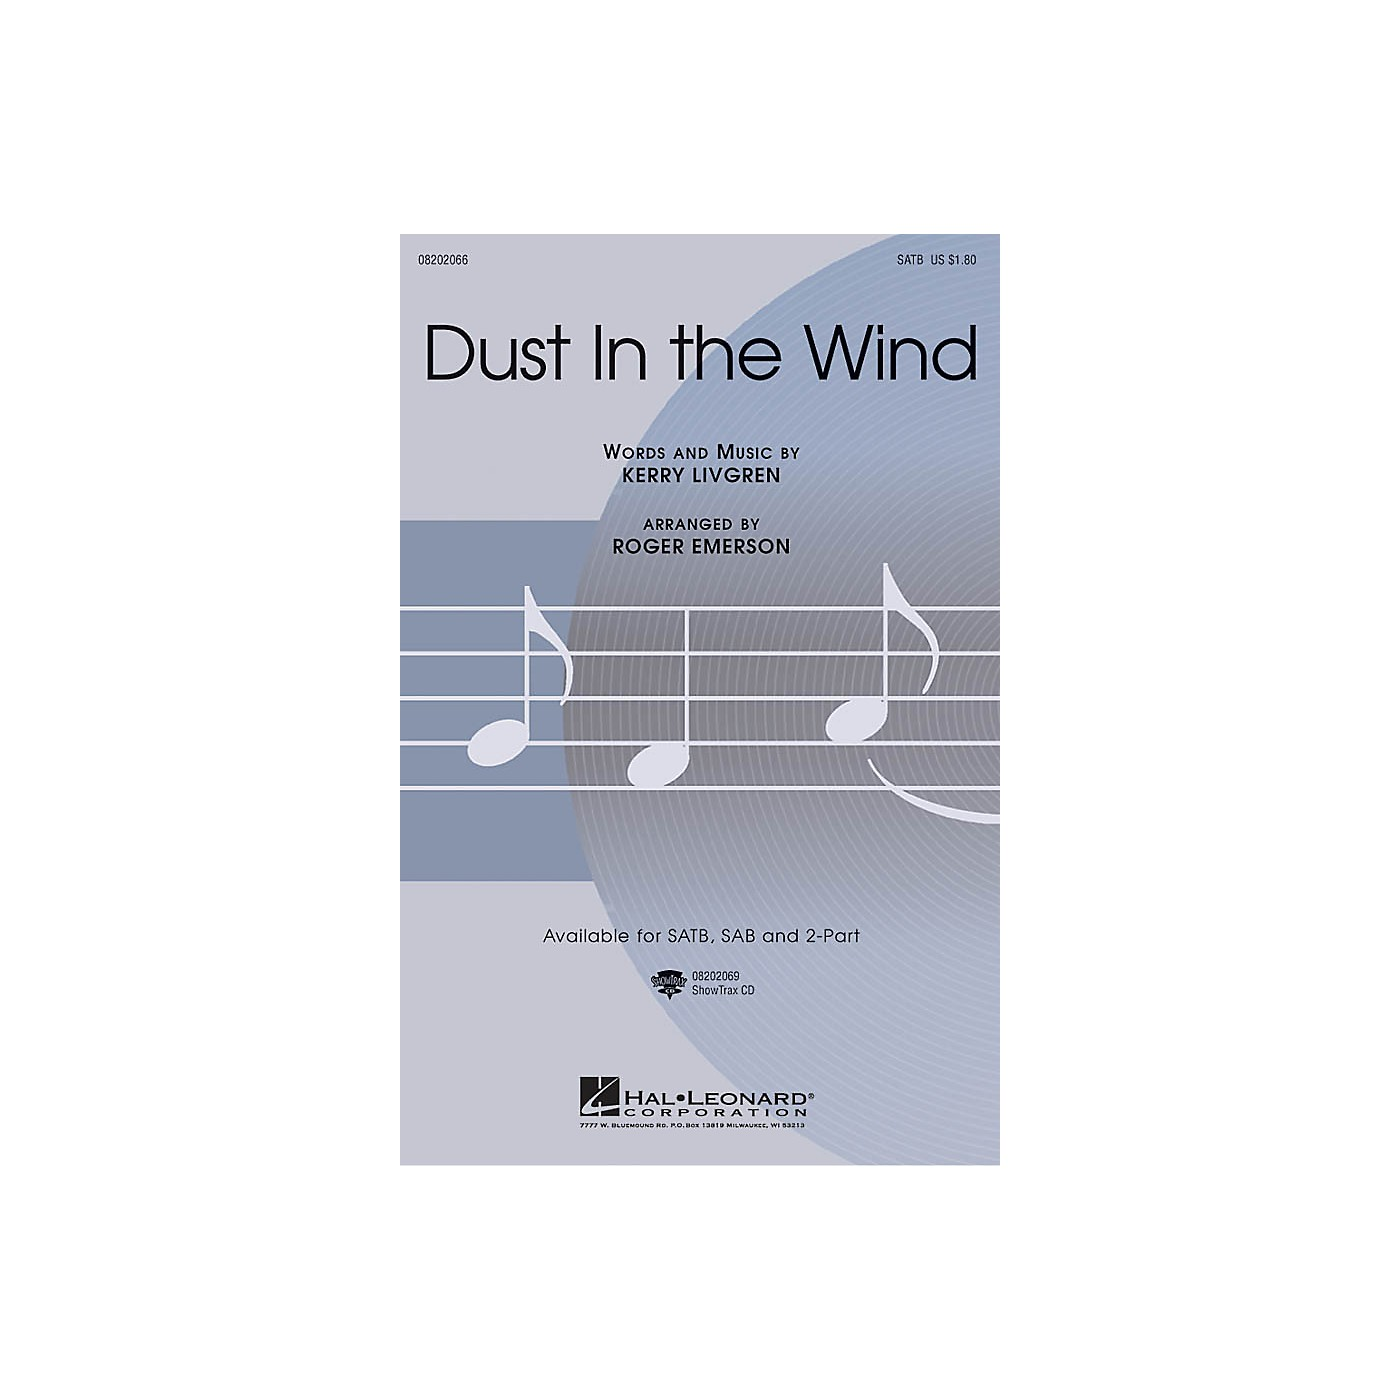 Hal Leonard Dust in the Wind SATB arranged by Roger Emerson thumbnail